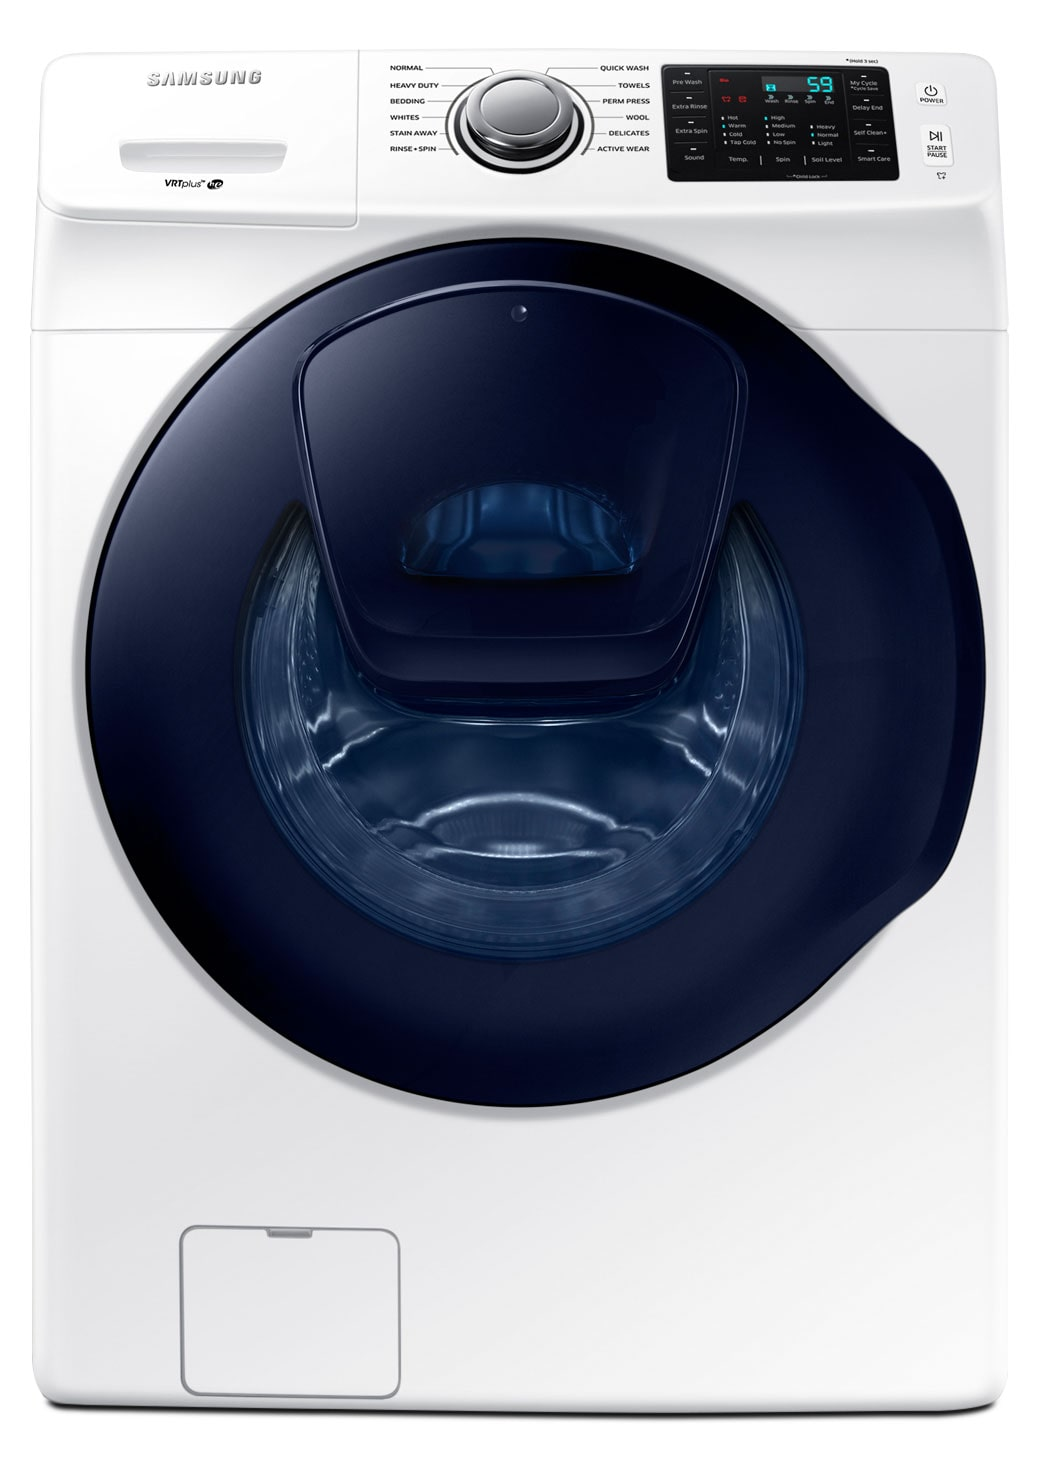 Washers and Dryers - Samsung White Front-Load Washer (5.2 Cu. Ft. IEC) - WF45K6200AW/A2